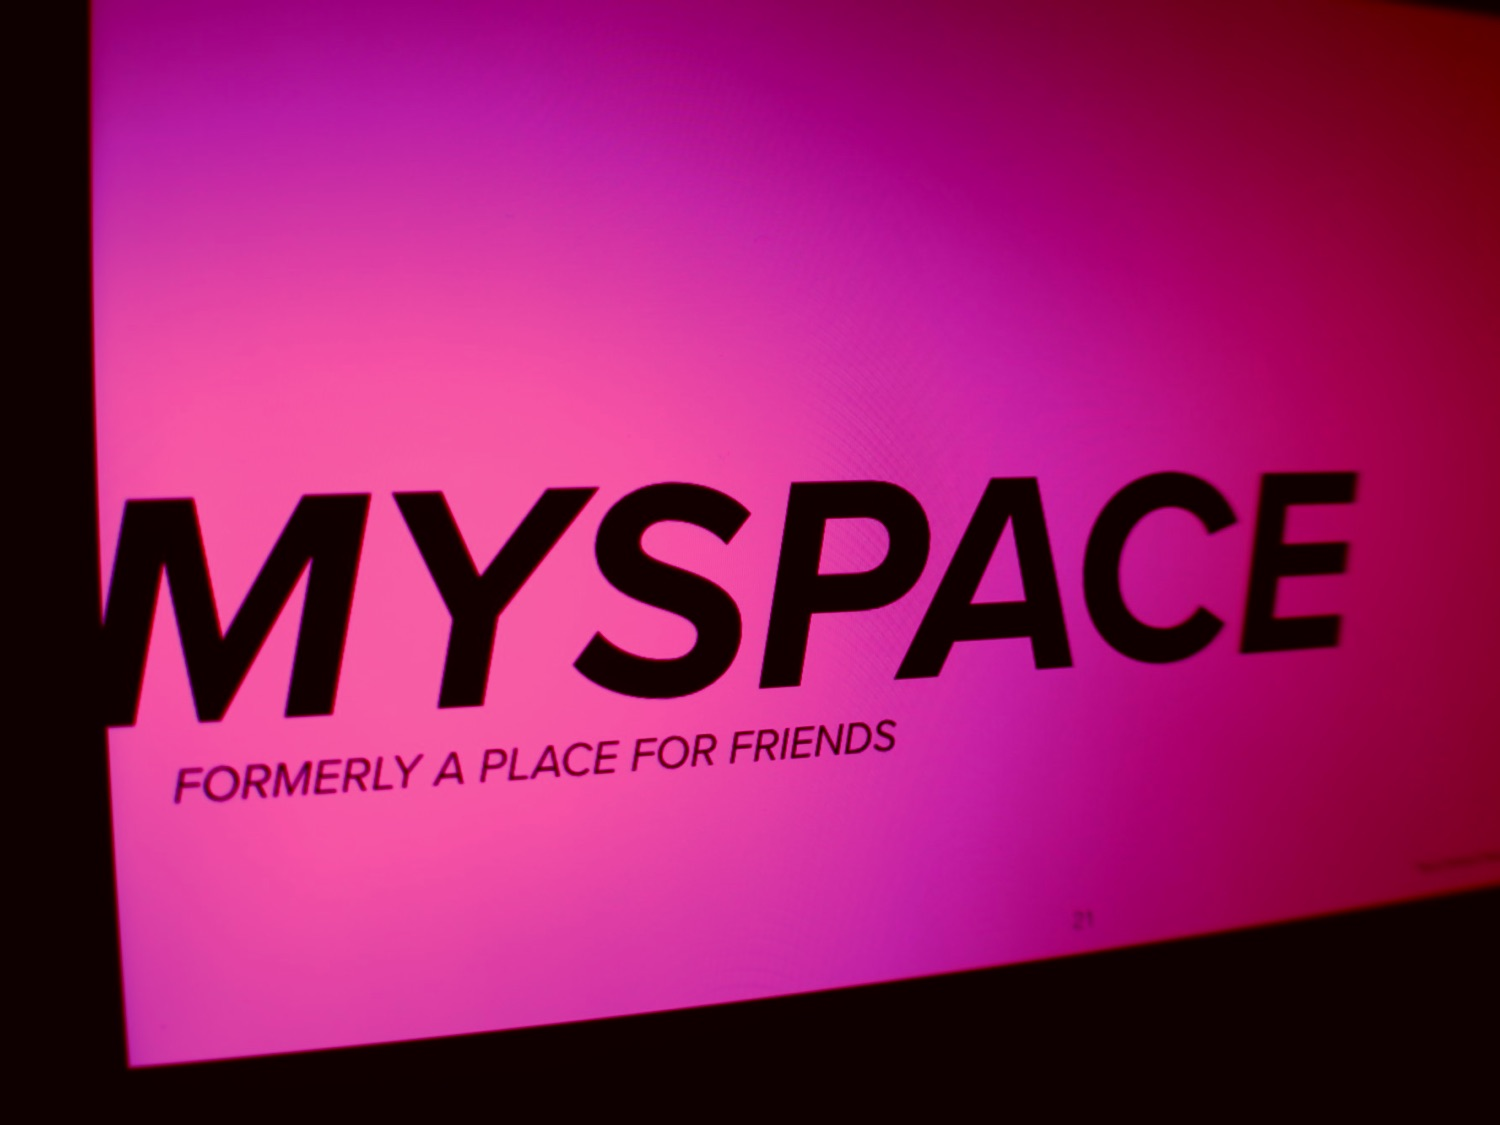 myspace-header.jpg